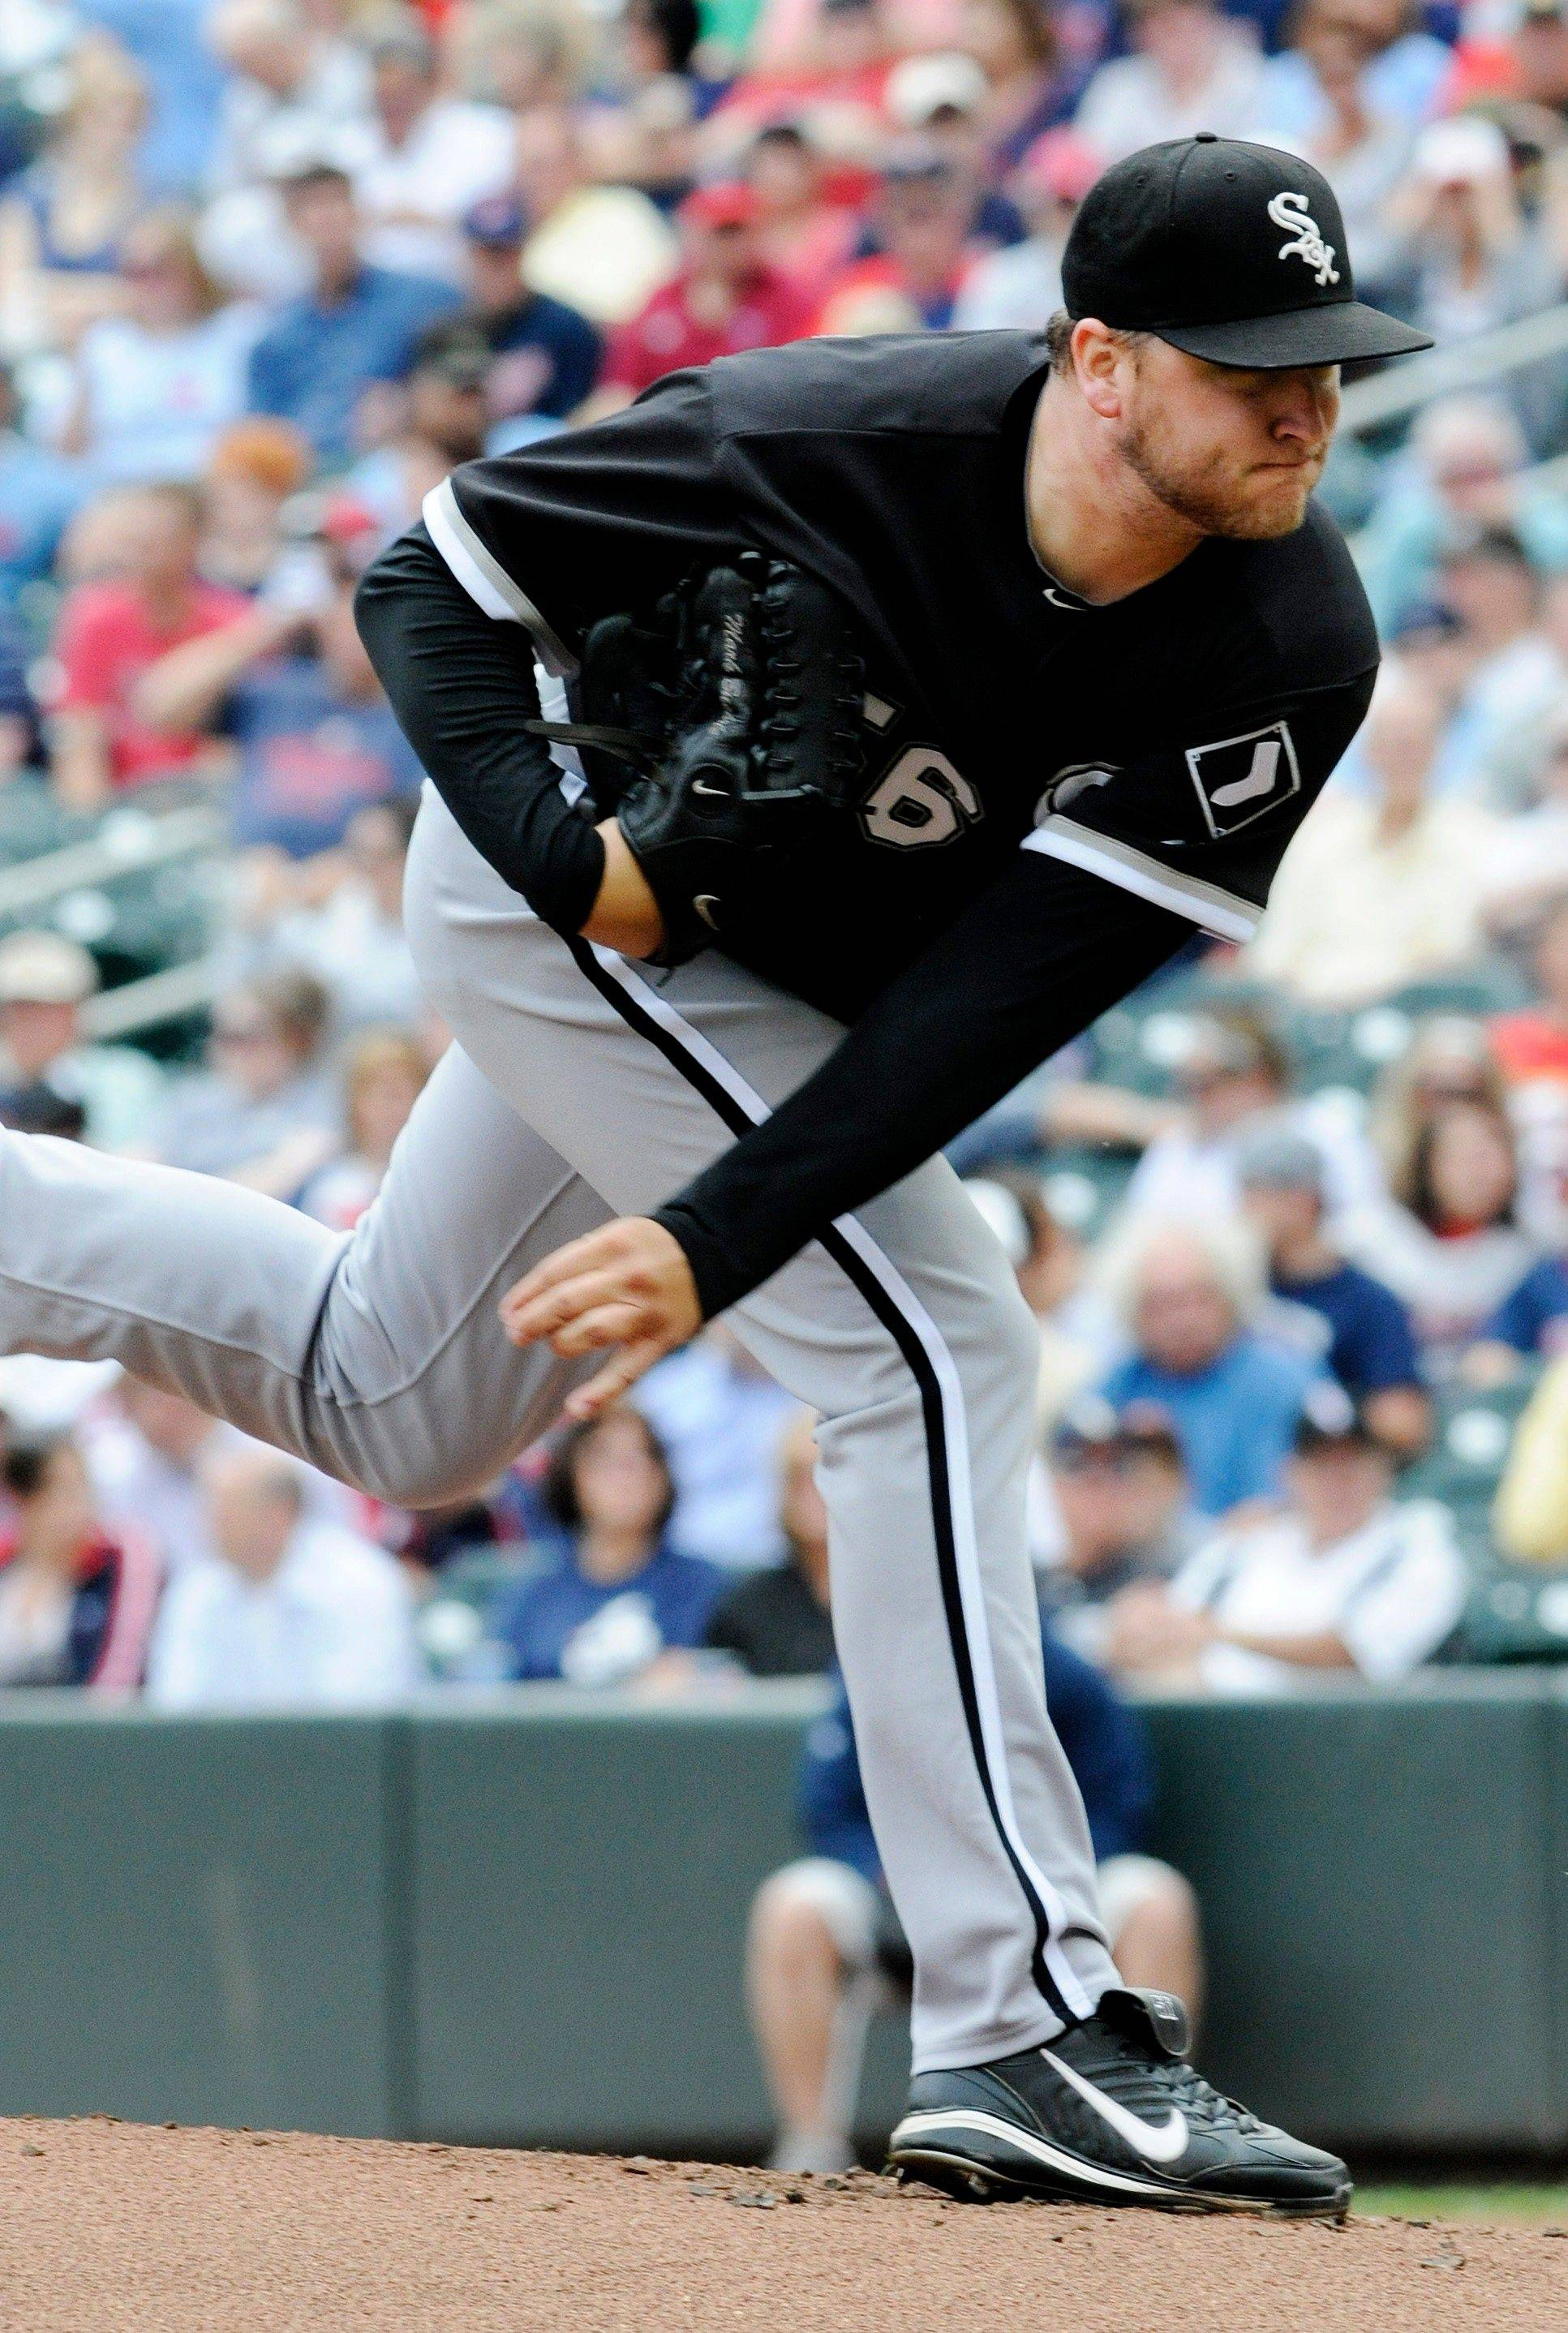 White Sox starter Mark Buehrle gave up only 1 run on 3 hits against the Minnesota Twins on Thursday, but the Sox offense has scored only 2 runs in four losses to the Twins this season.